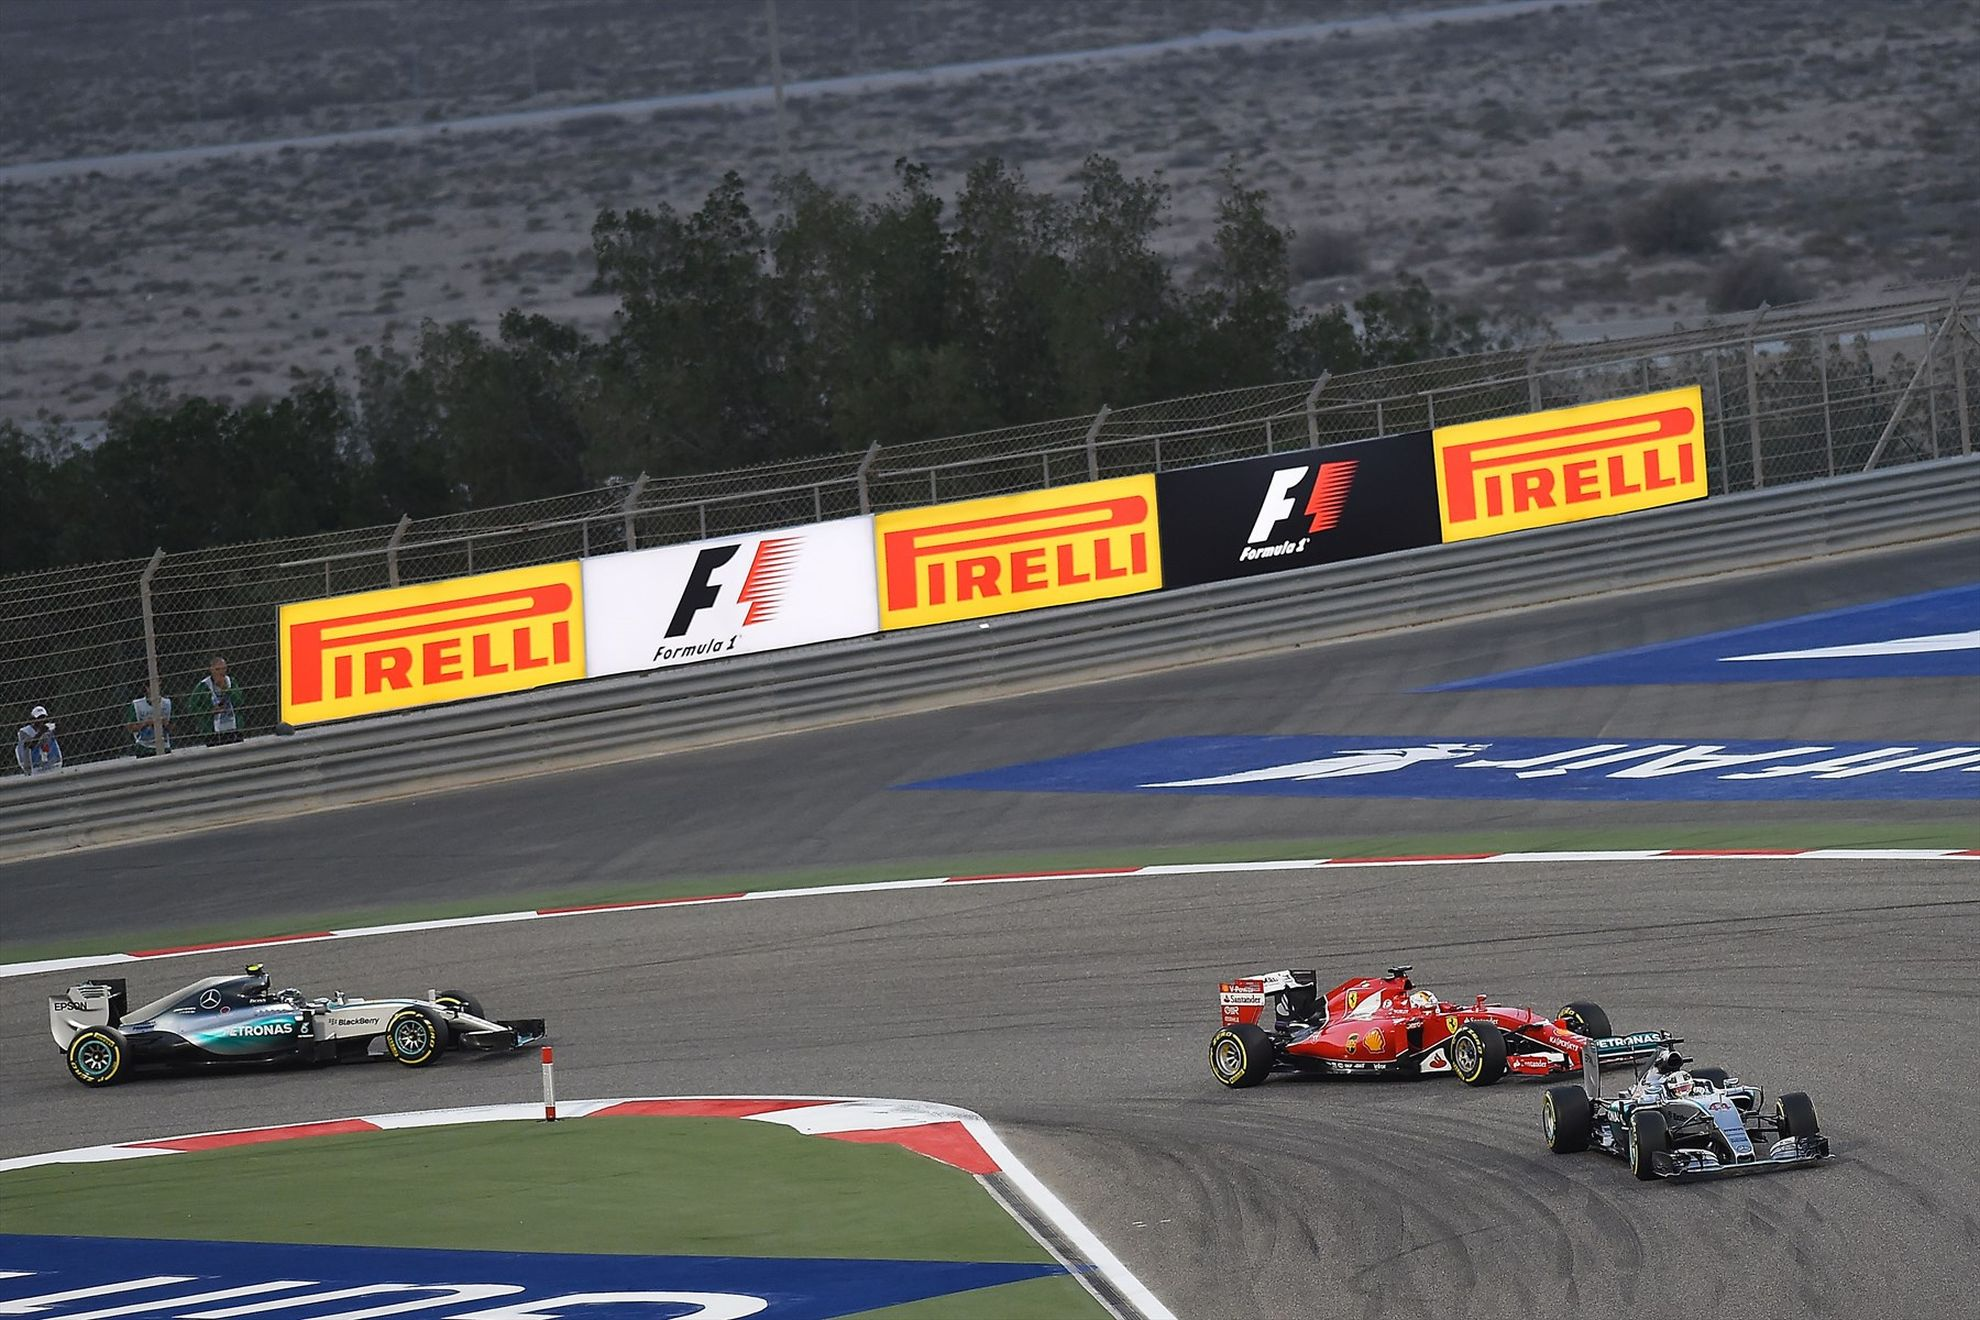 2015-Bahrain-Grand-Prix-Ferrari-Race-Results-main